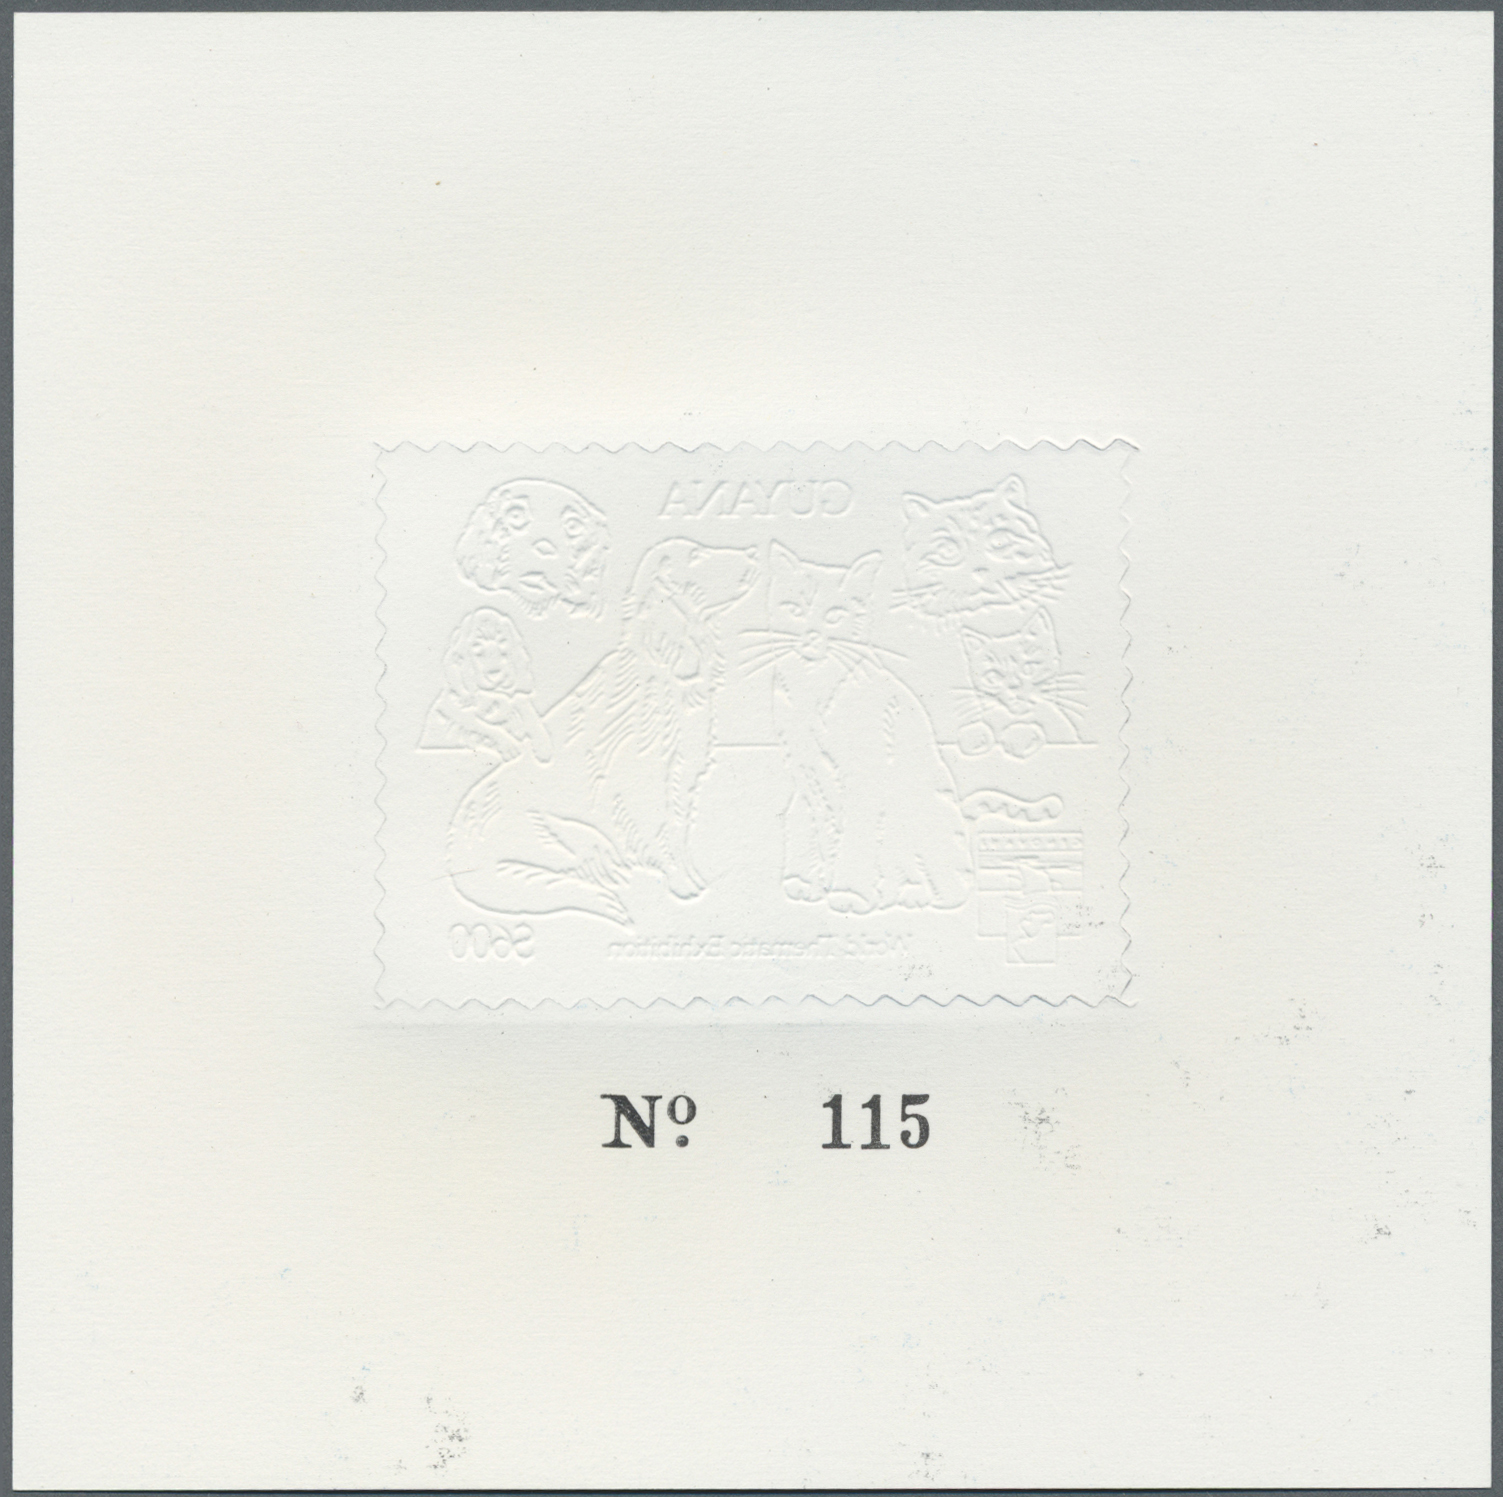 Lot 13830 - guyana  -  Auktionshaus Christoph Gärtner GmbH & Co. KG Single lots Philately Overseas & Europe. Auction #39 Day 4